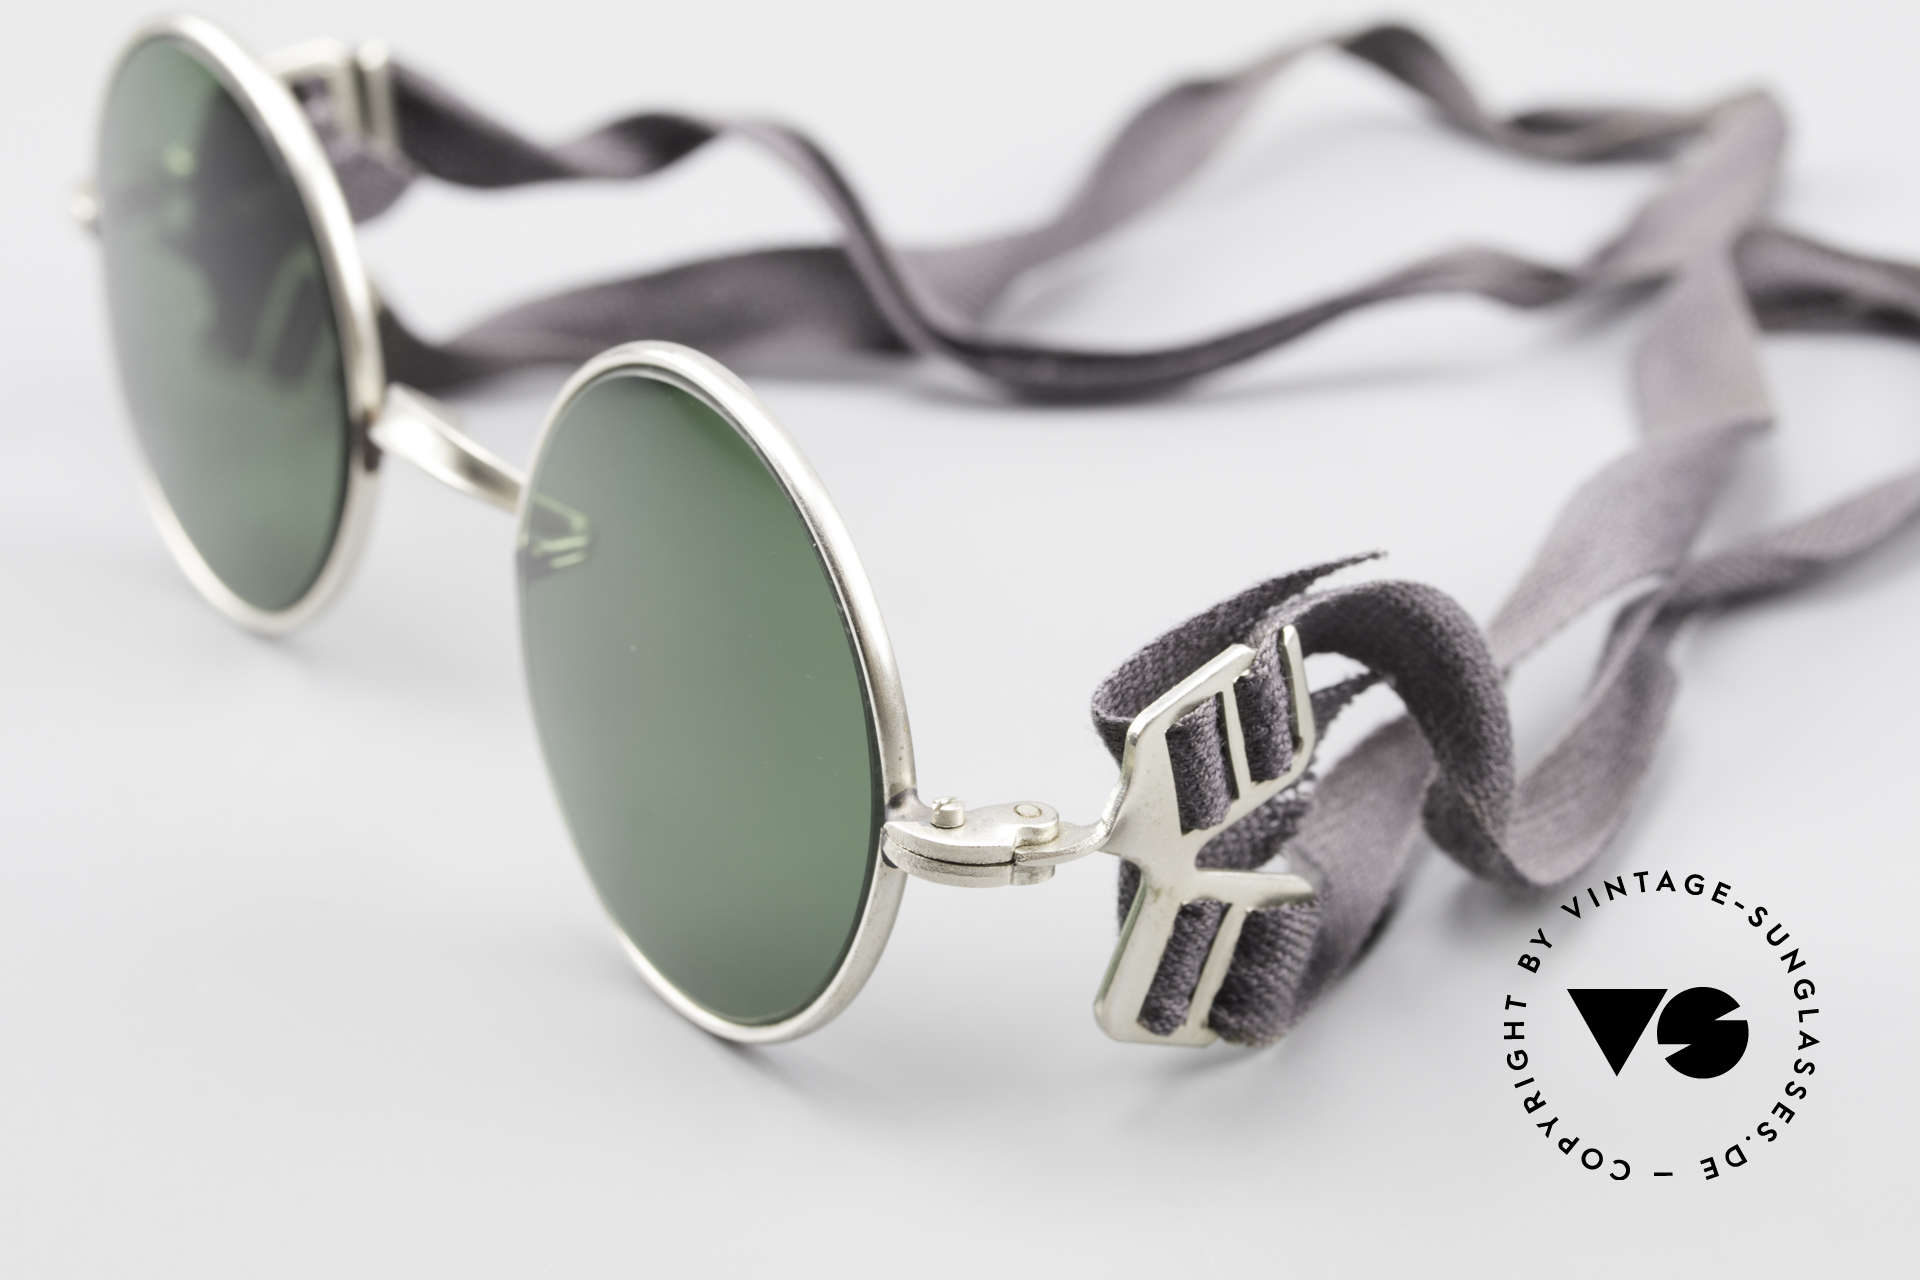 Militärbrille Round Old Army Military Sunglasses, 2nd hand model with new lenses and hard case, Made for Men